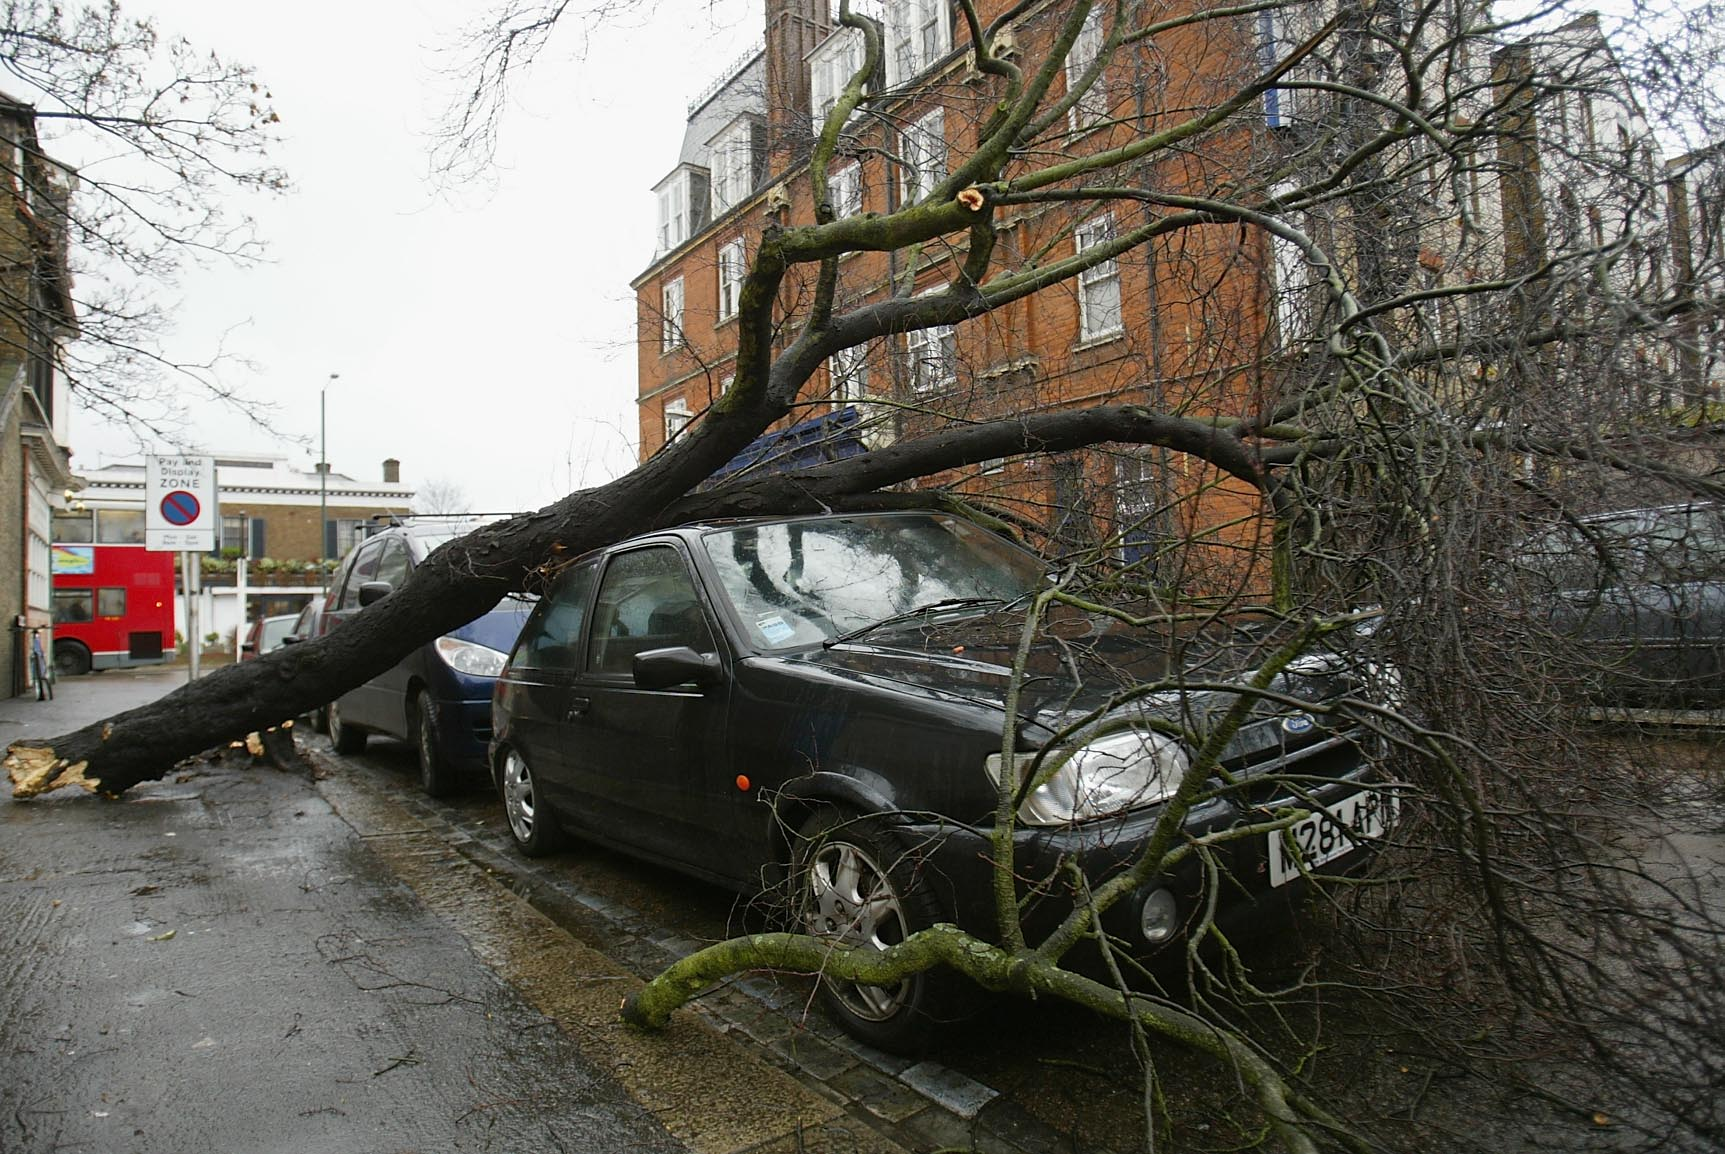 Customers pay up to £3,000 to make a car insurance claim